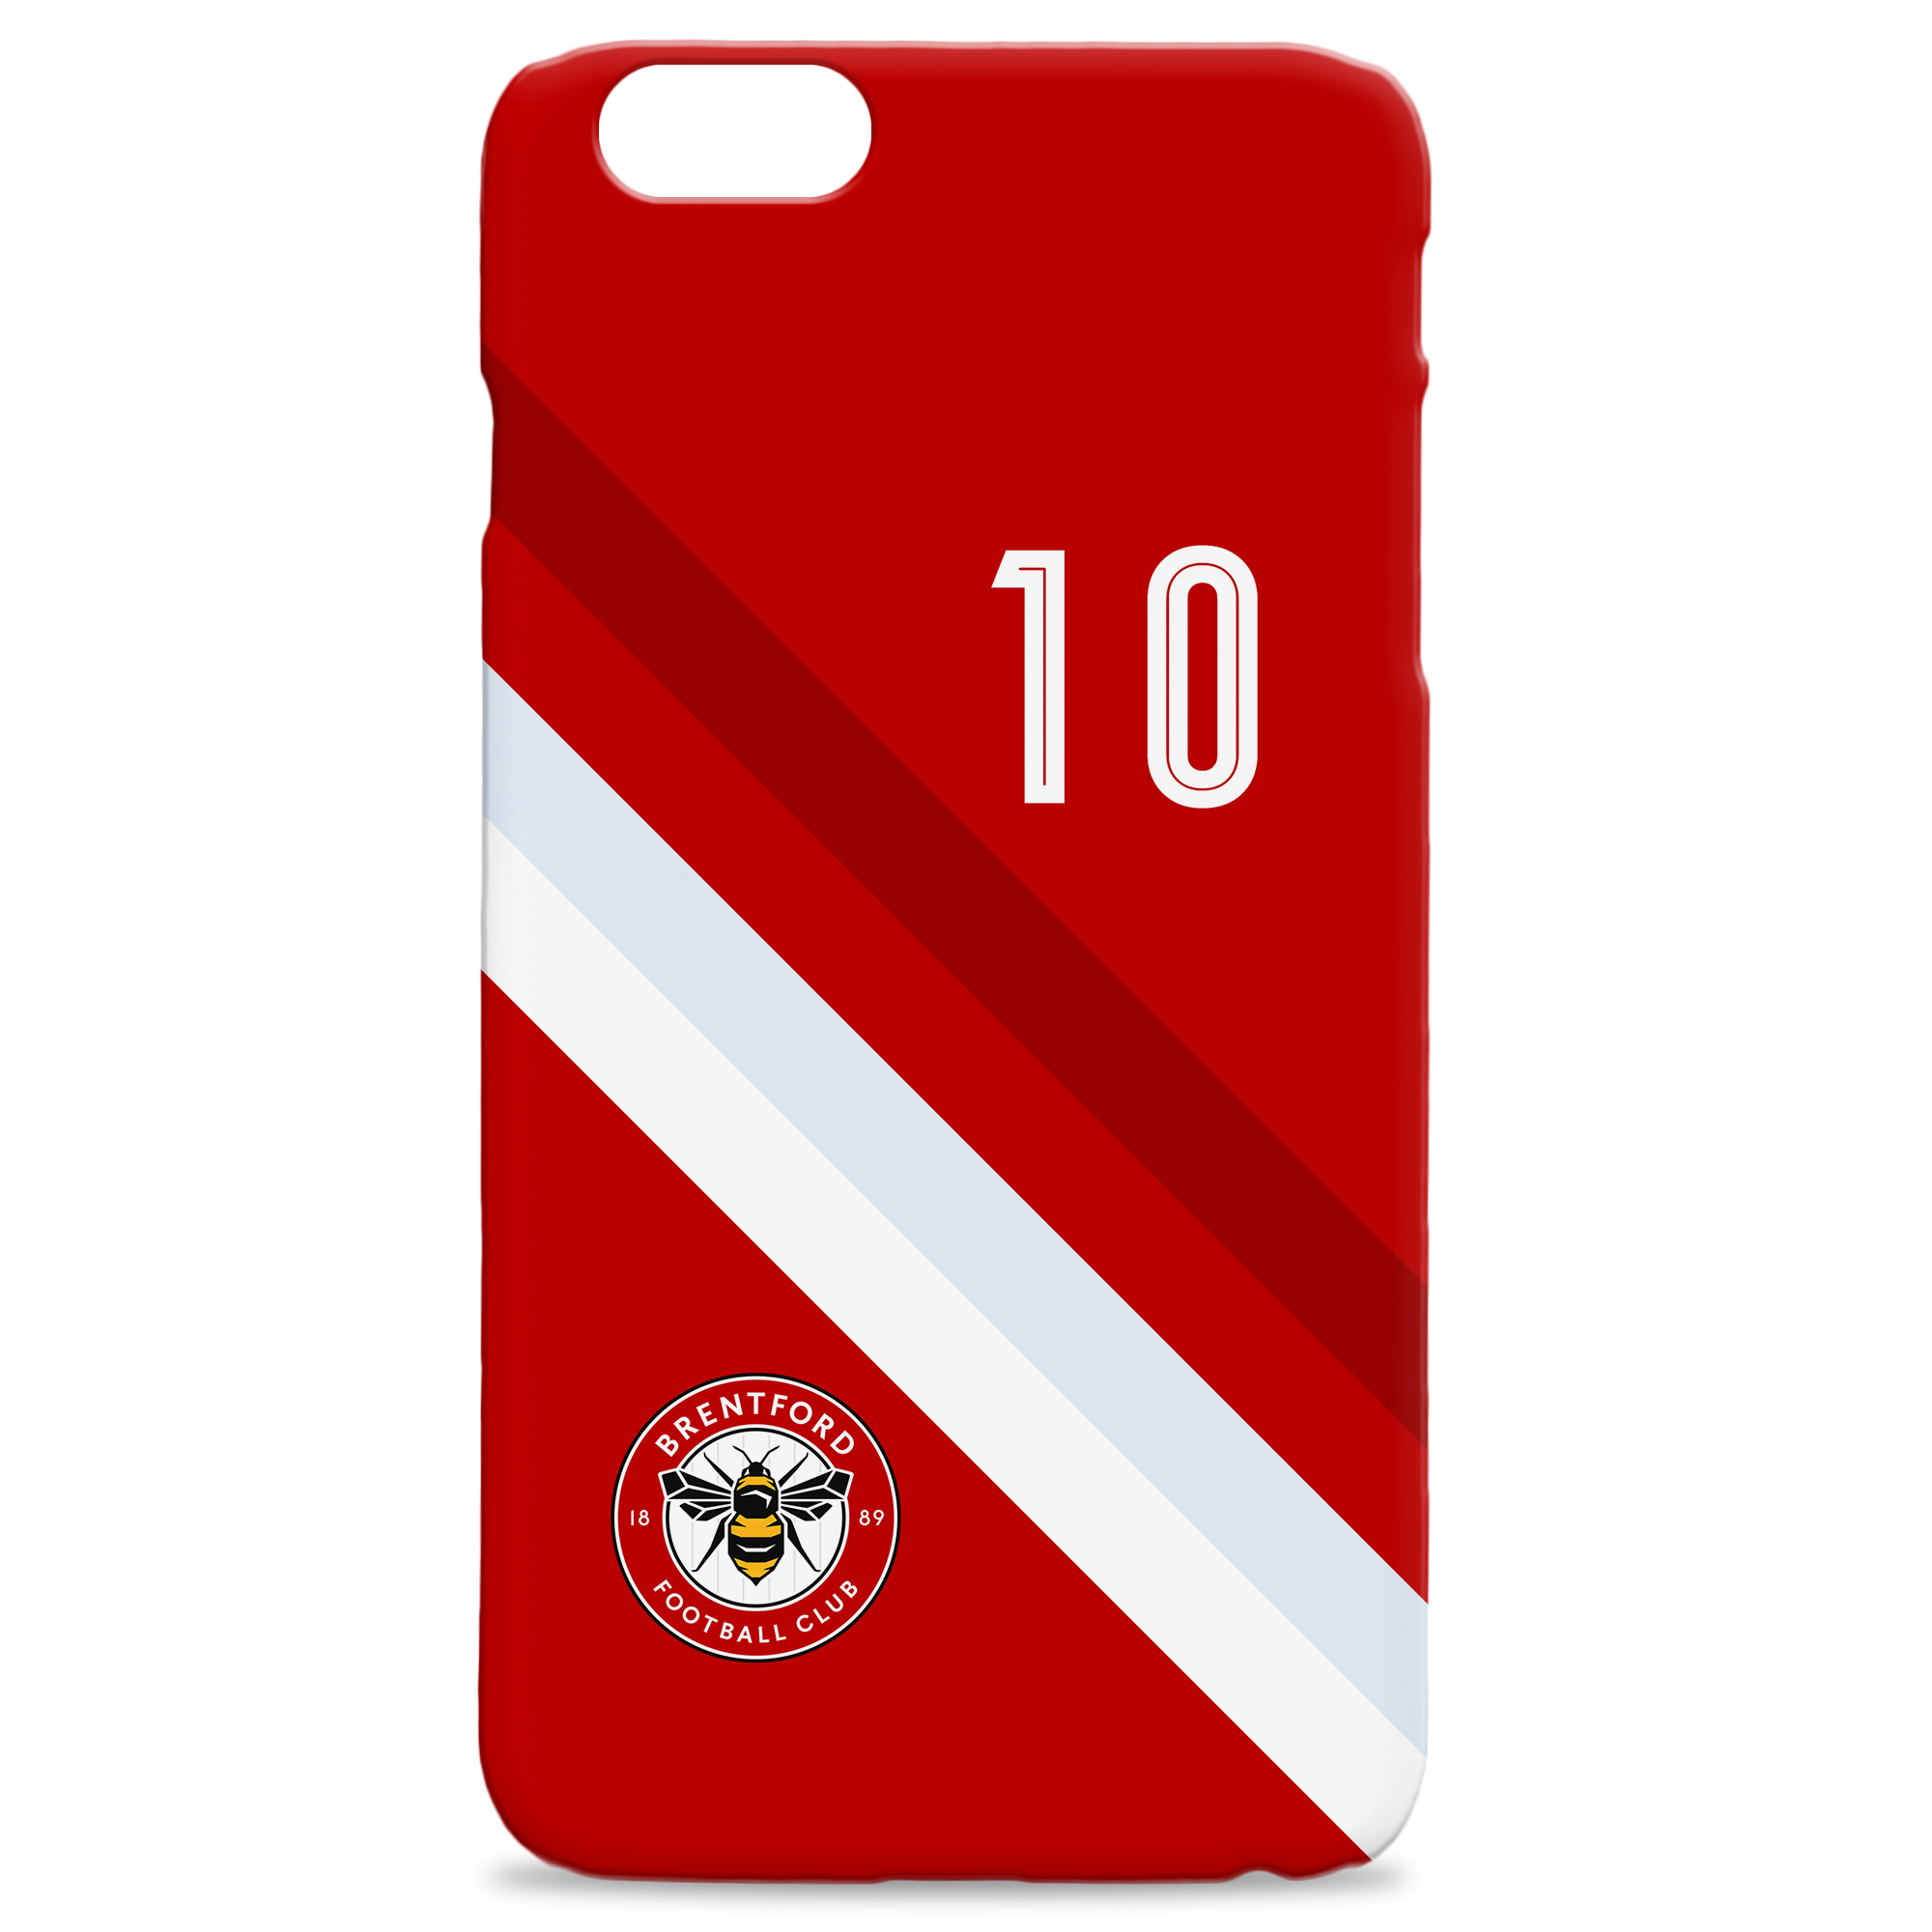 Brentford Stripe Hard Back Phone Case